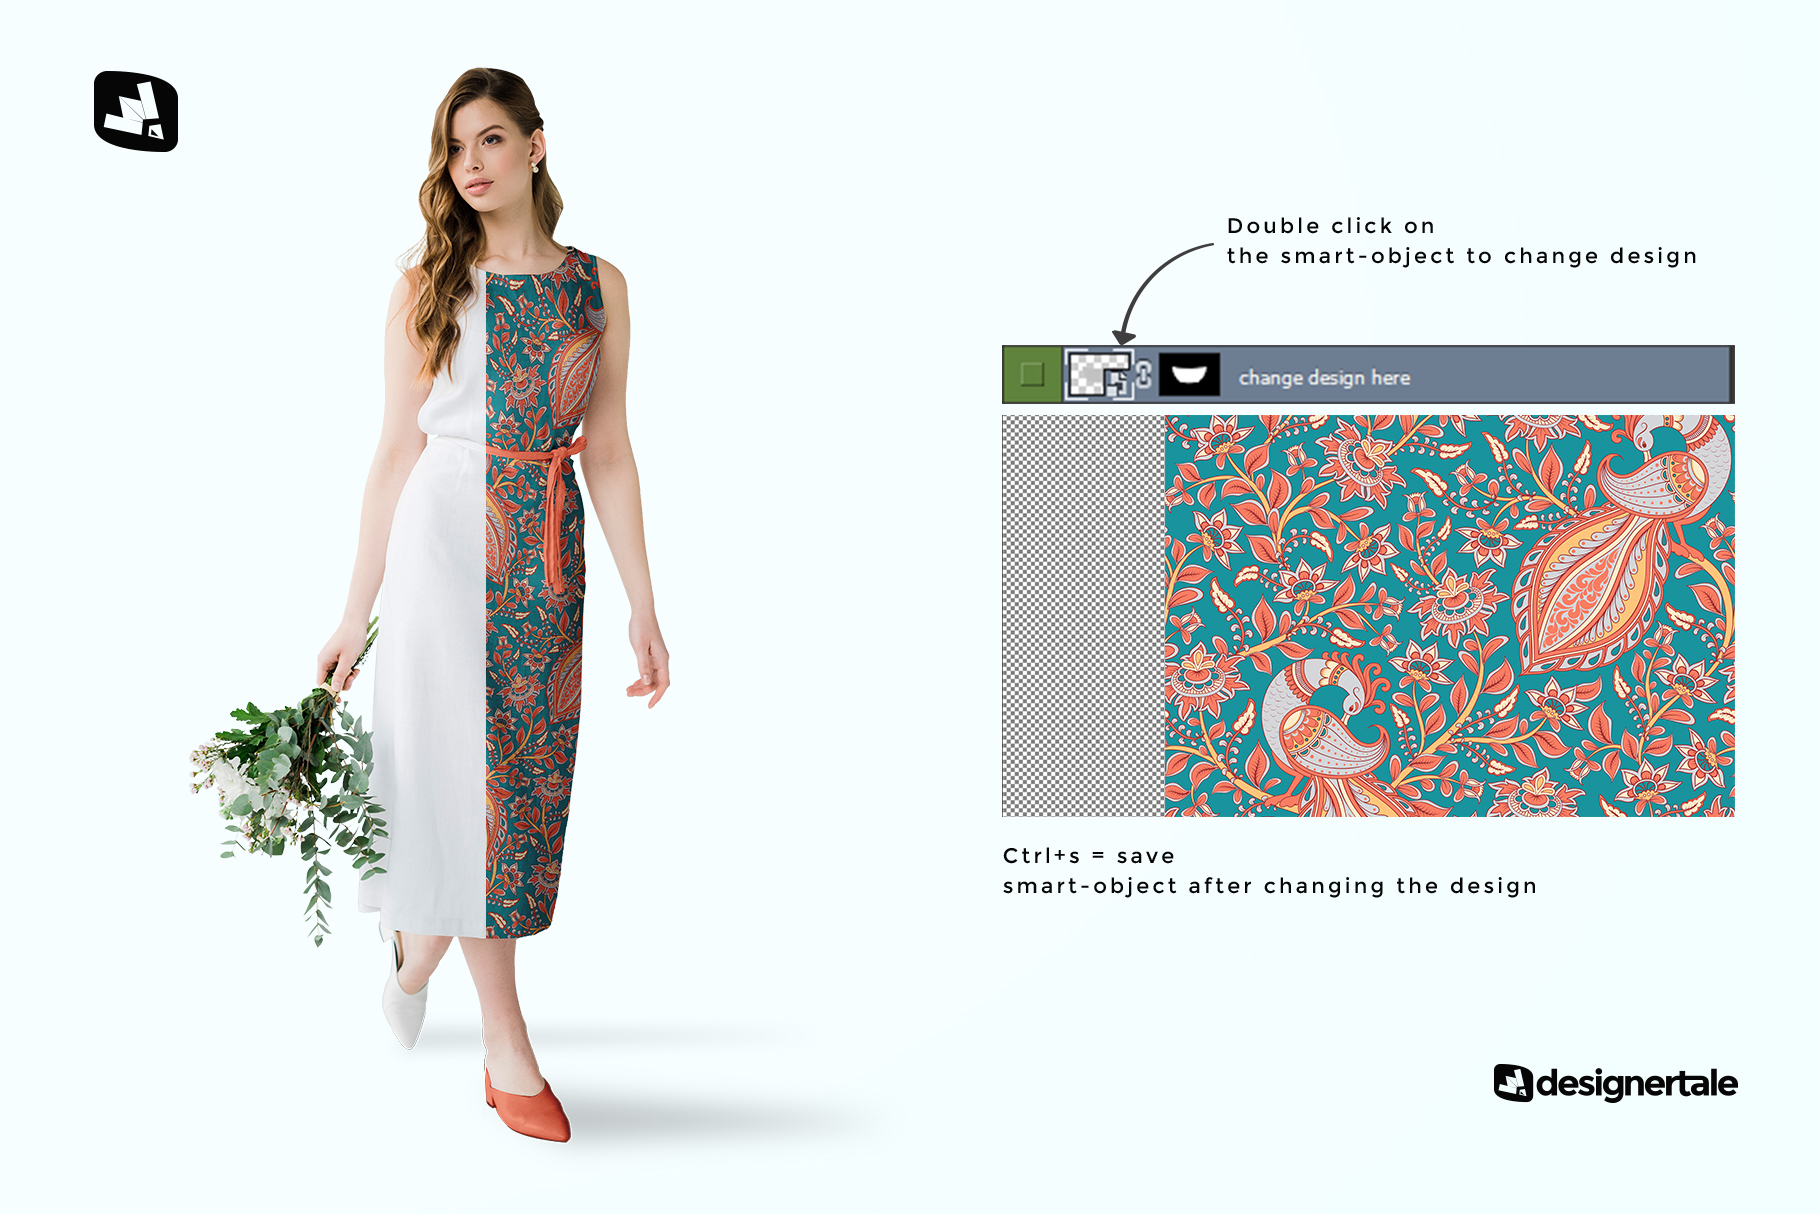 how to change design of the female cotton summer dress mockup